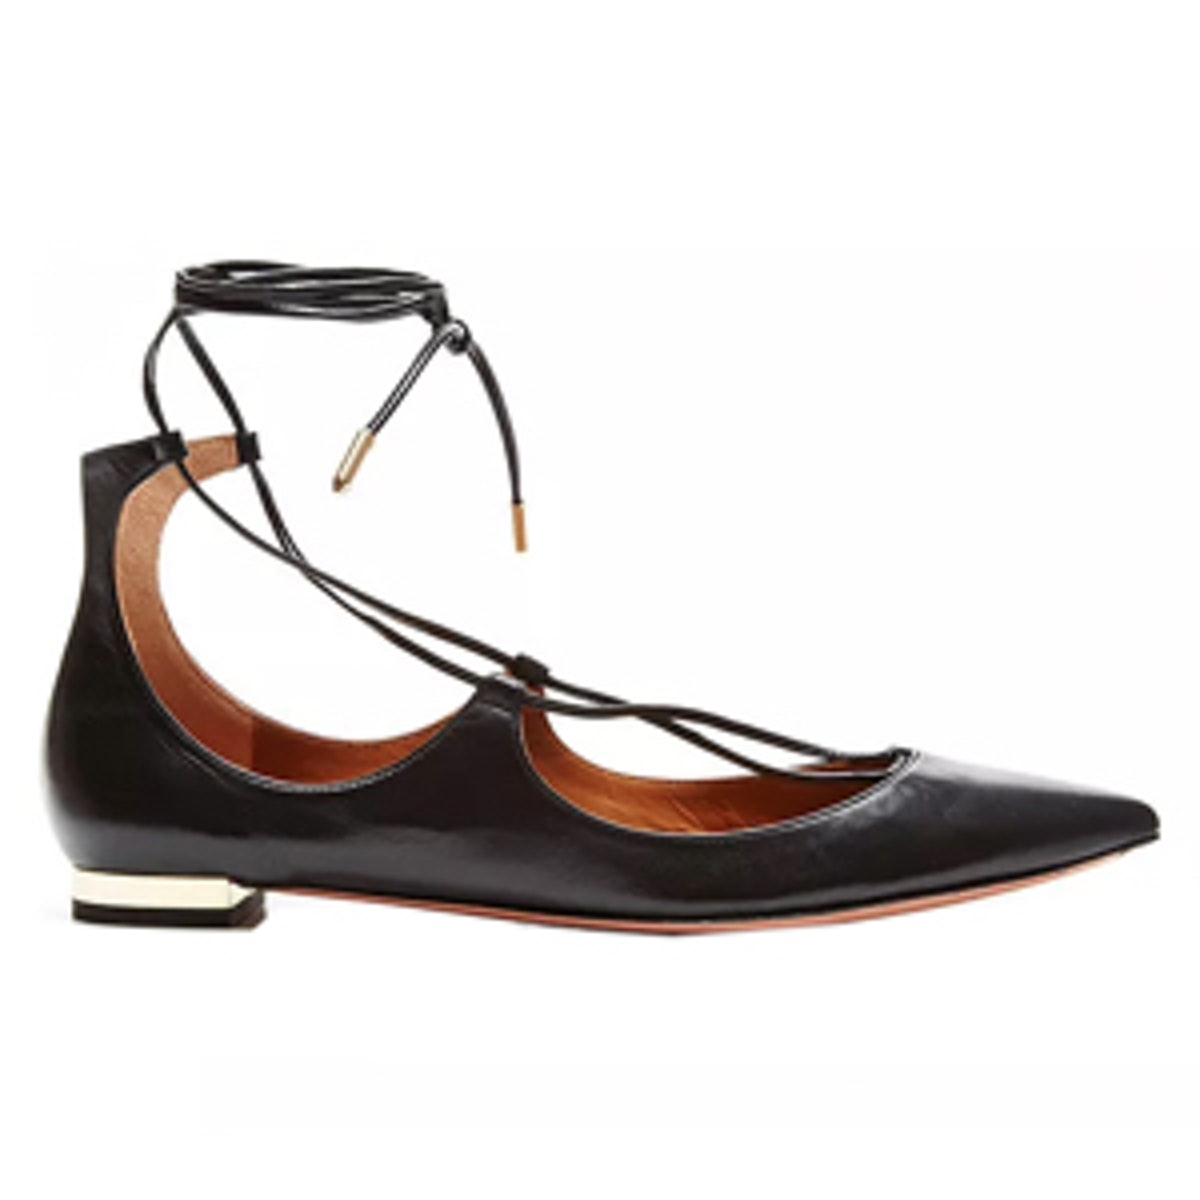 Christy Leather Pointed-Toe Flats